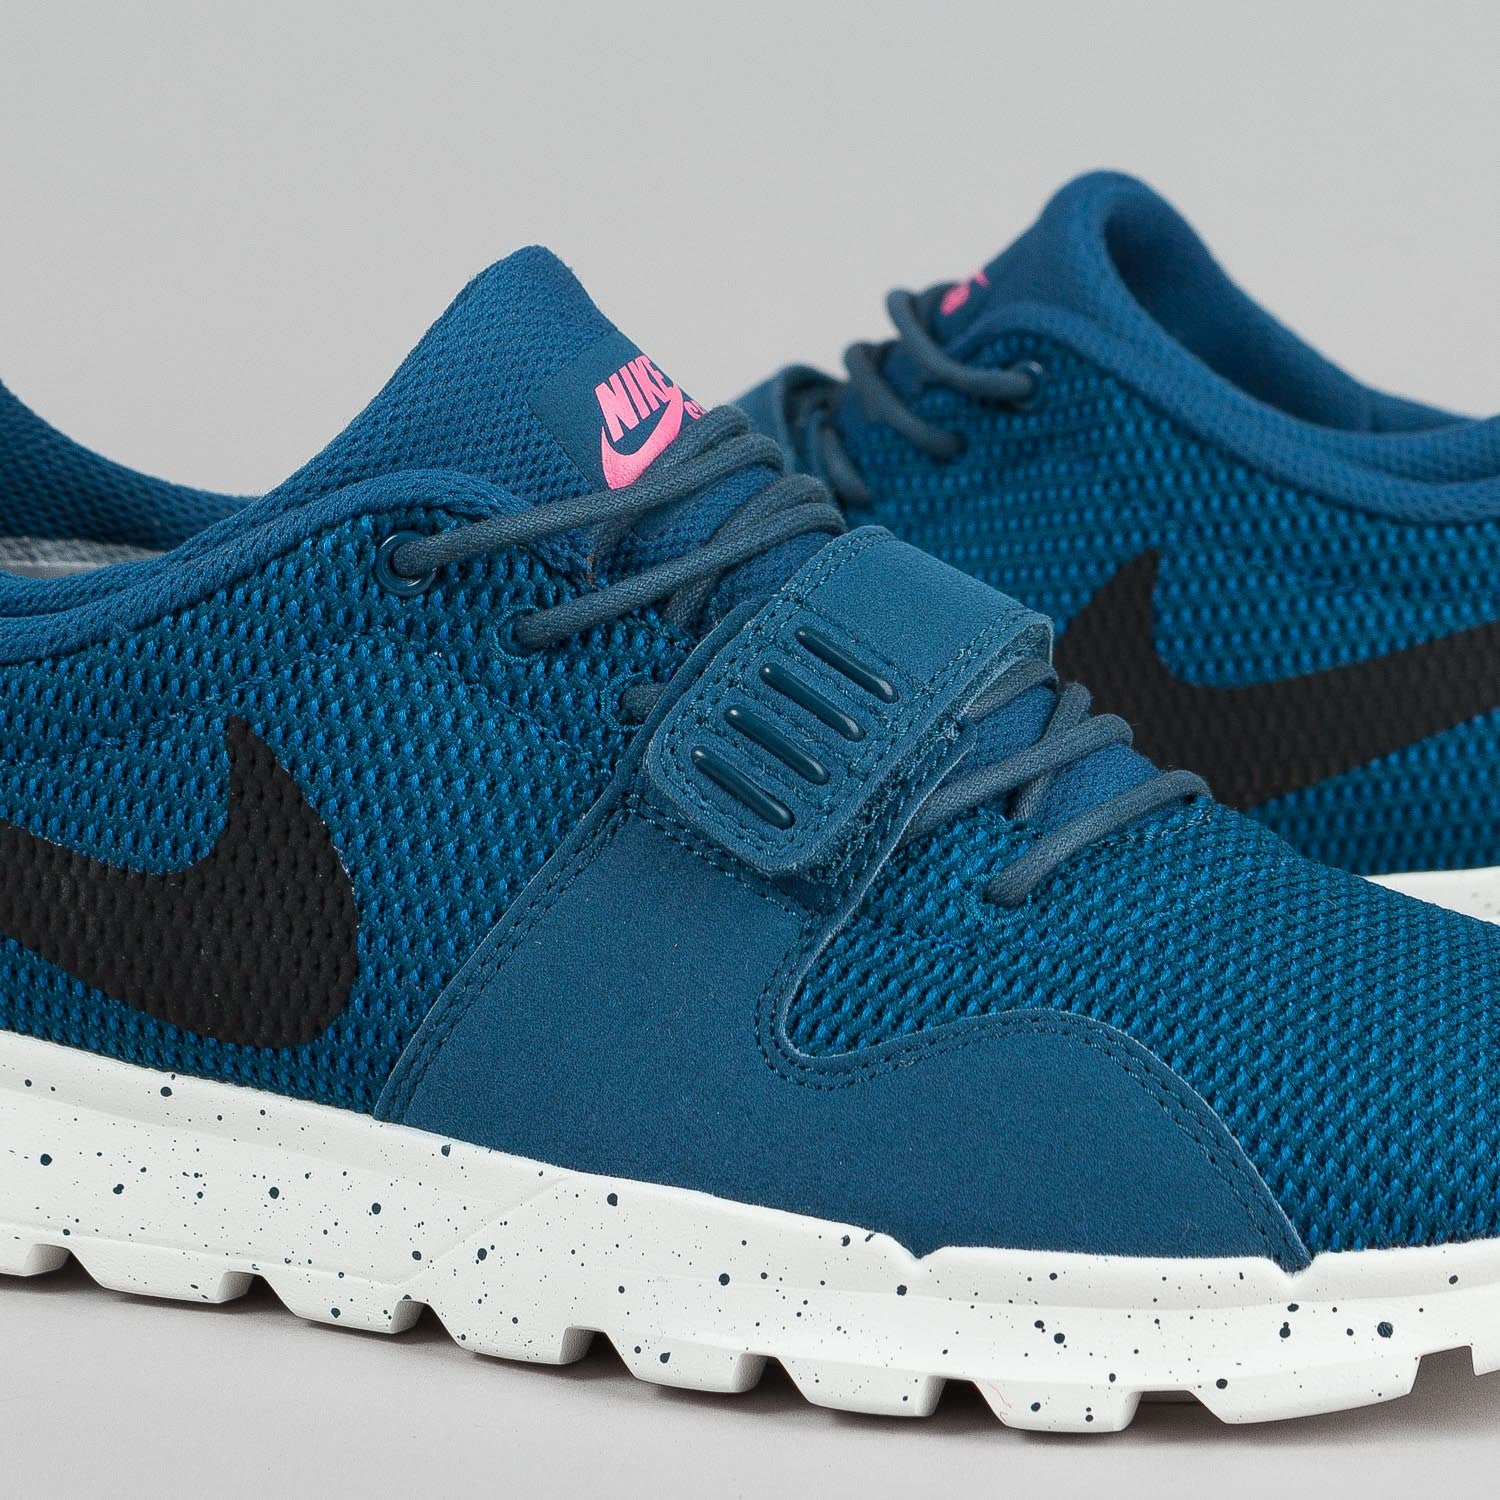 Nike SB Trainerendor Shoes Blue Force / Black - Sail - Pink